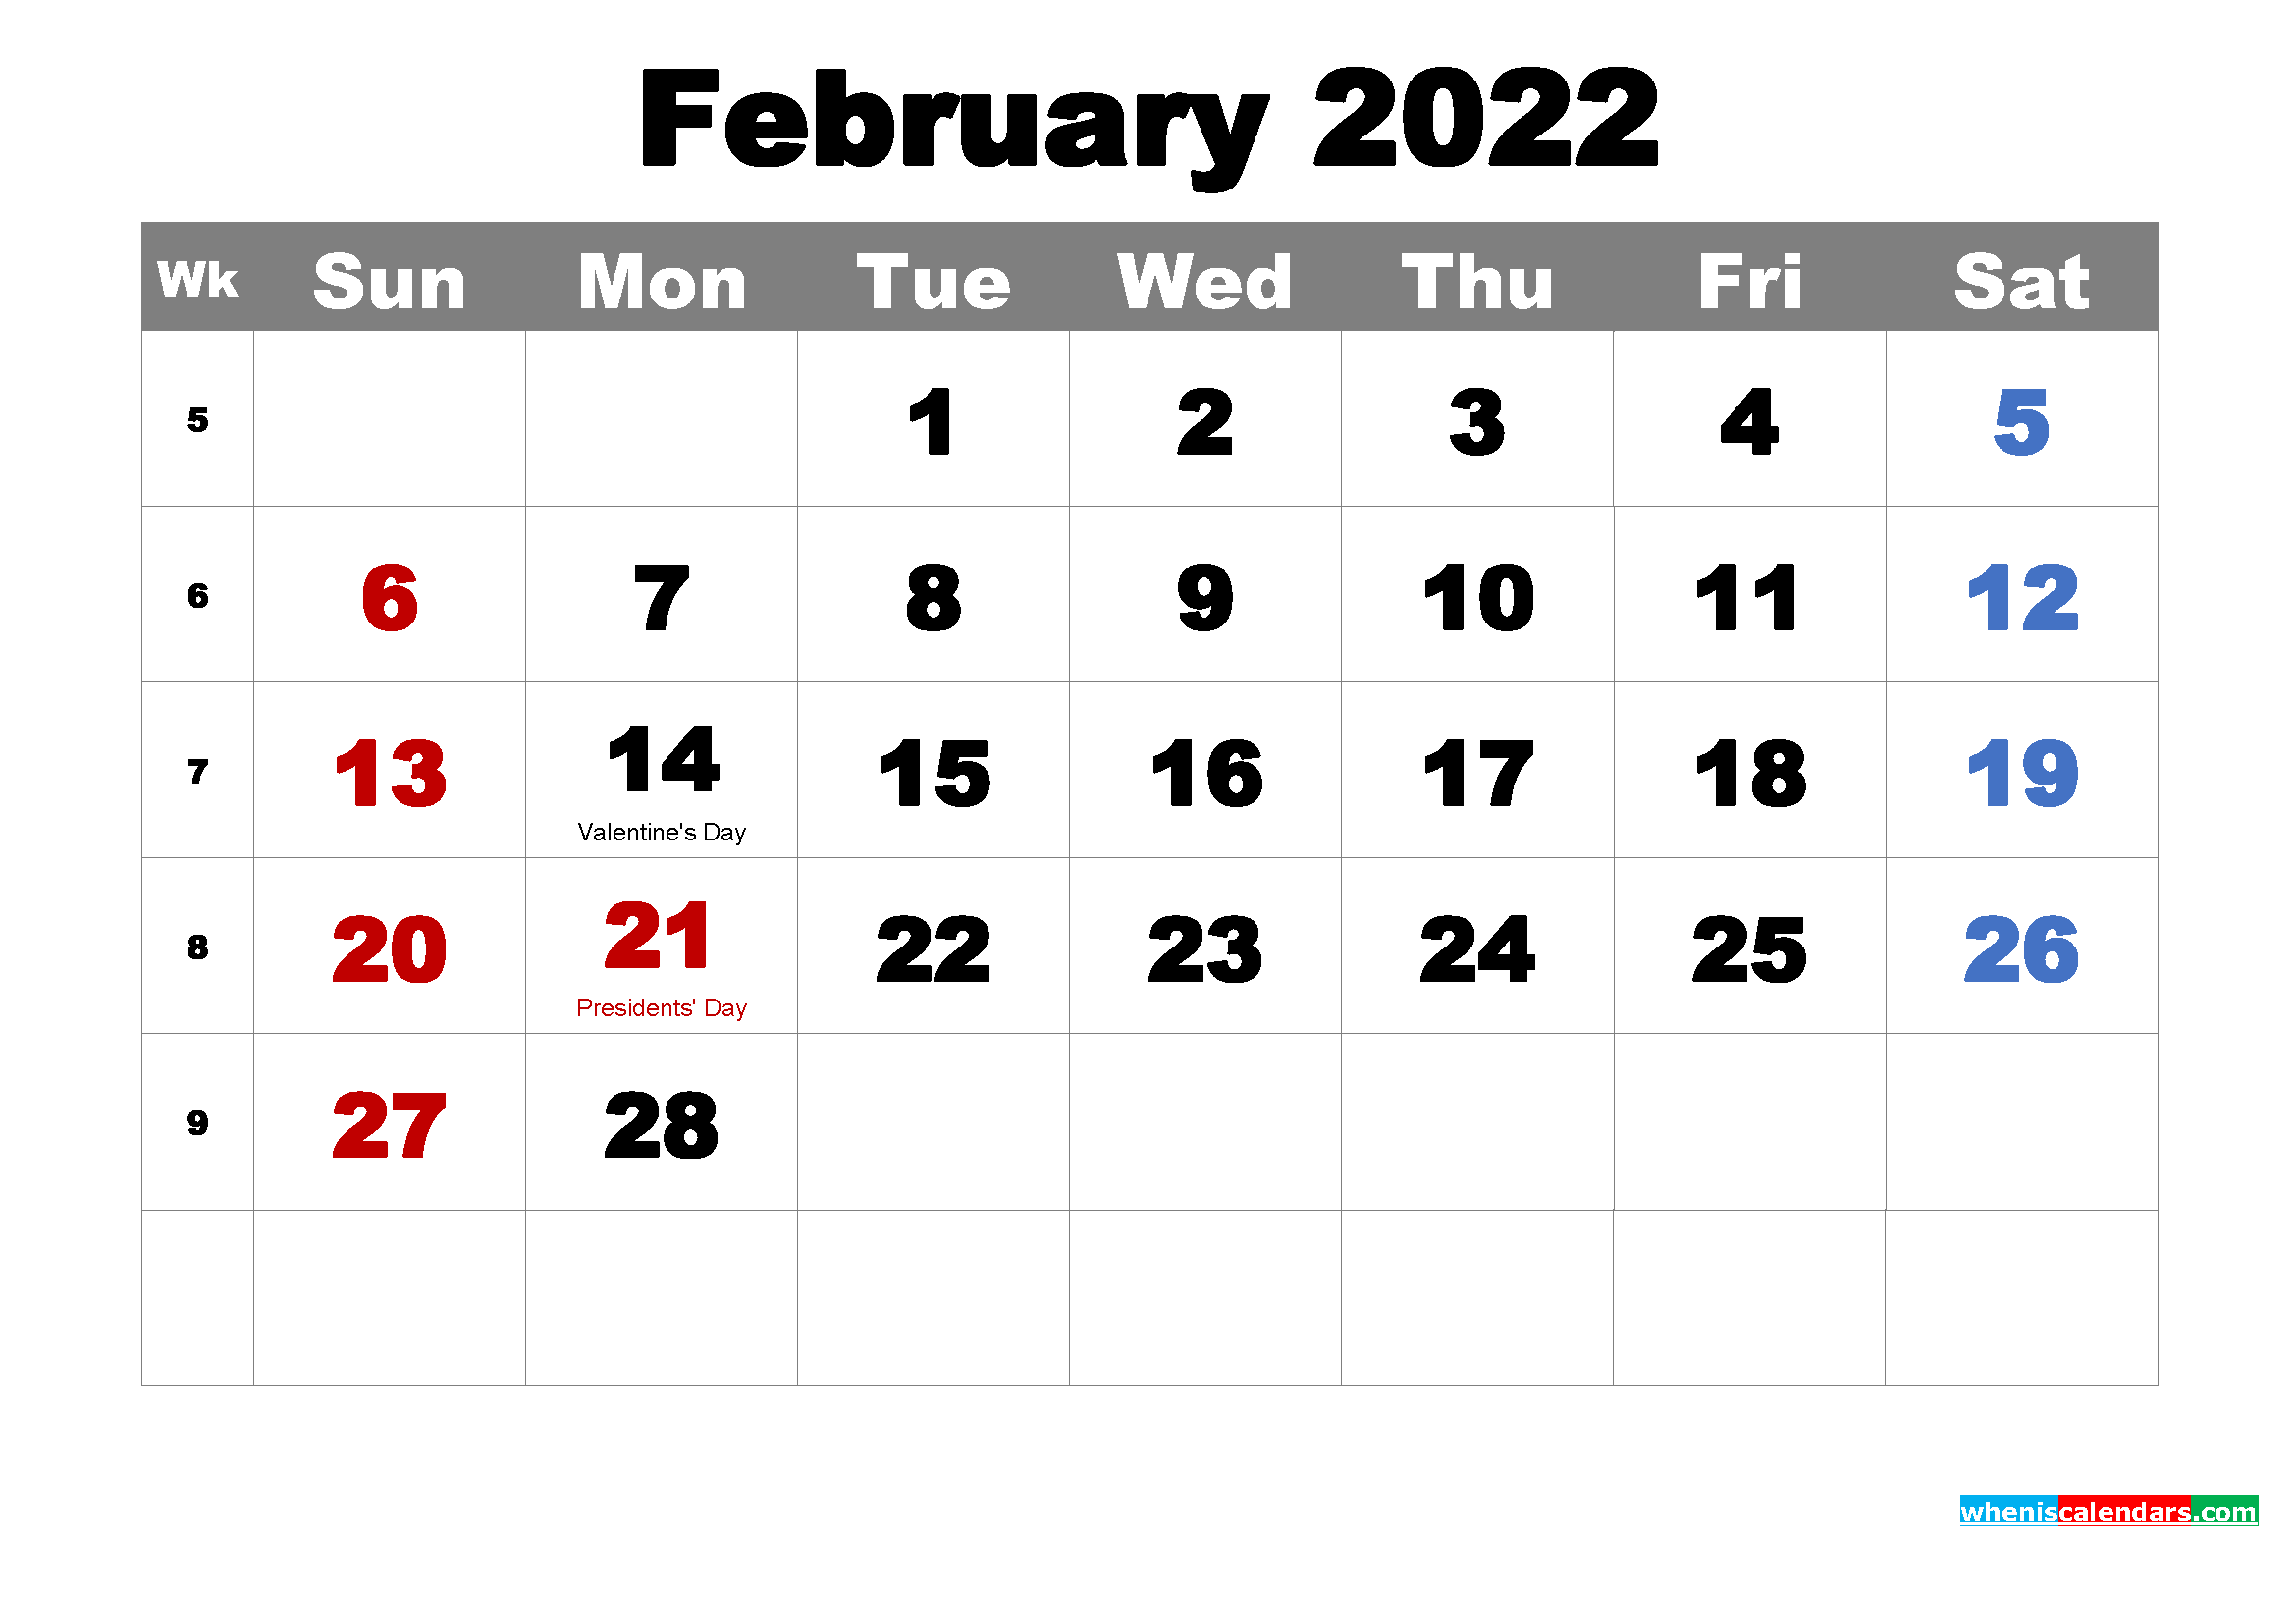 Free Printable February 2022 Calendar With Holidays As In February 2022 Calendar Template